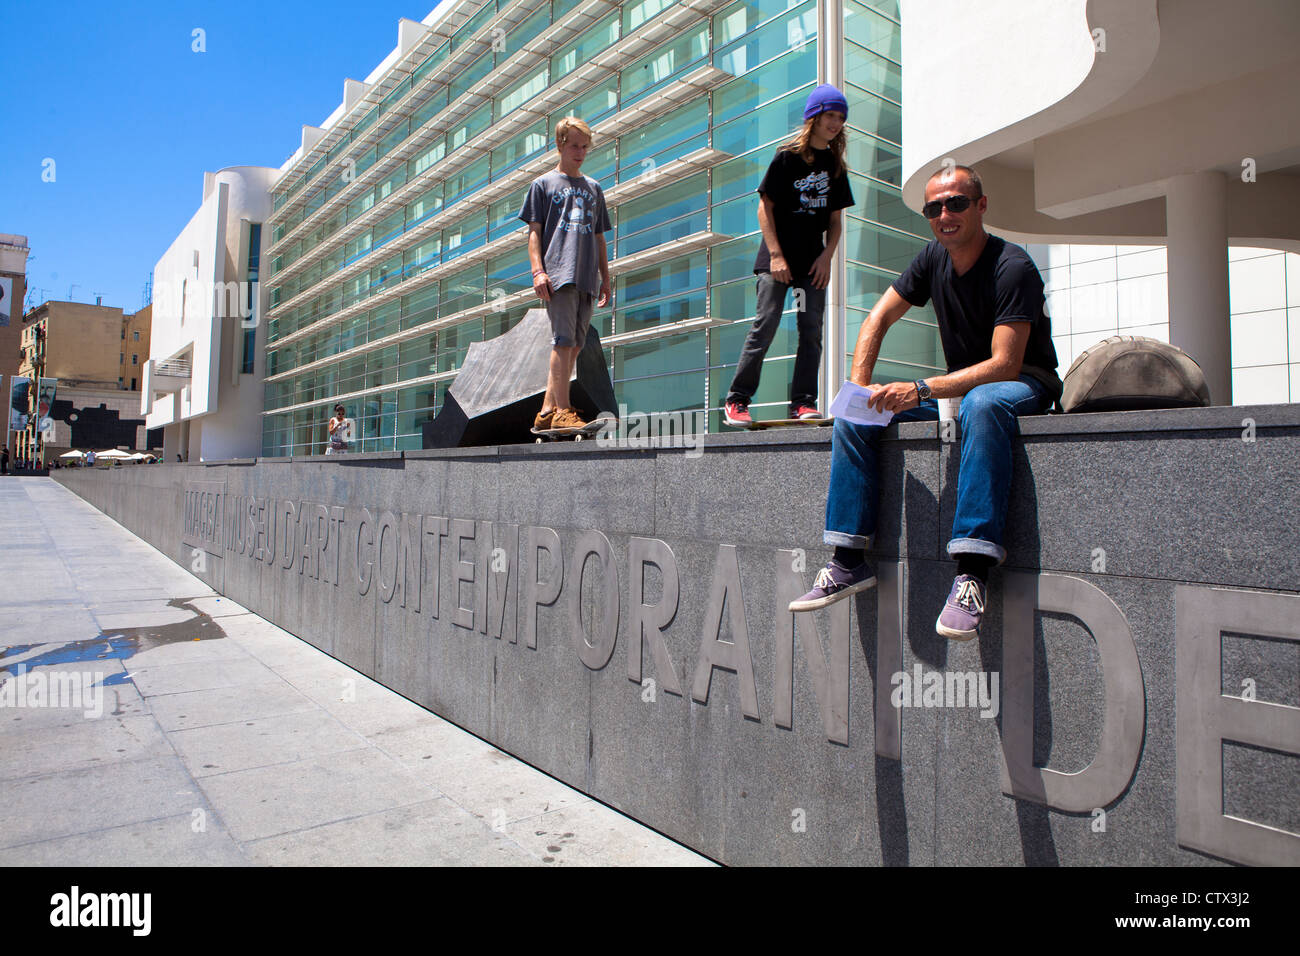 Boys skateboarding outside MACBA contemporary art Museum Barcelona Spain - Stock Image